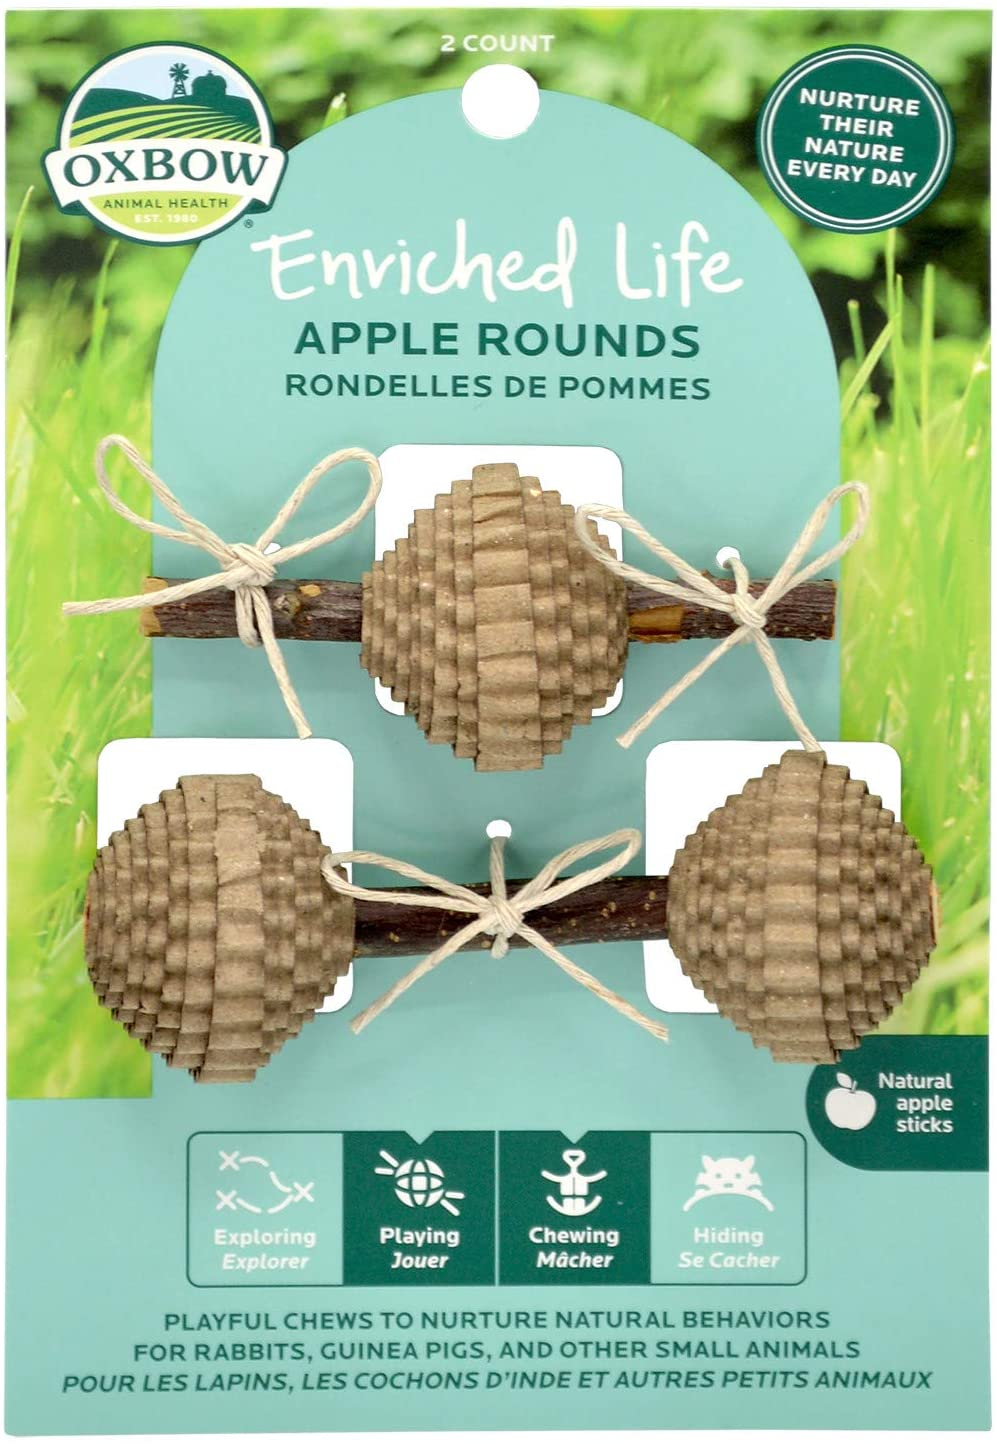 Oxbow Enriched Life Apple Rounds Image